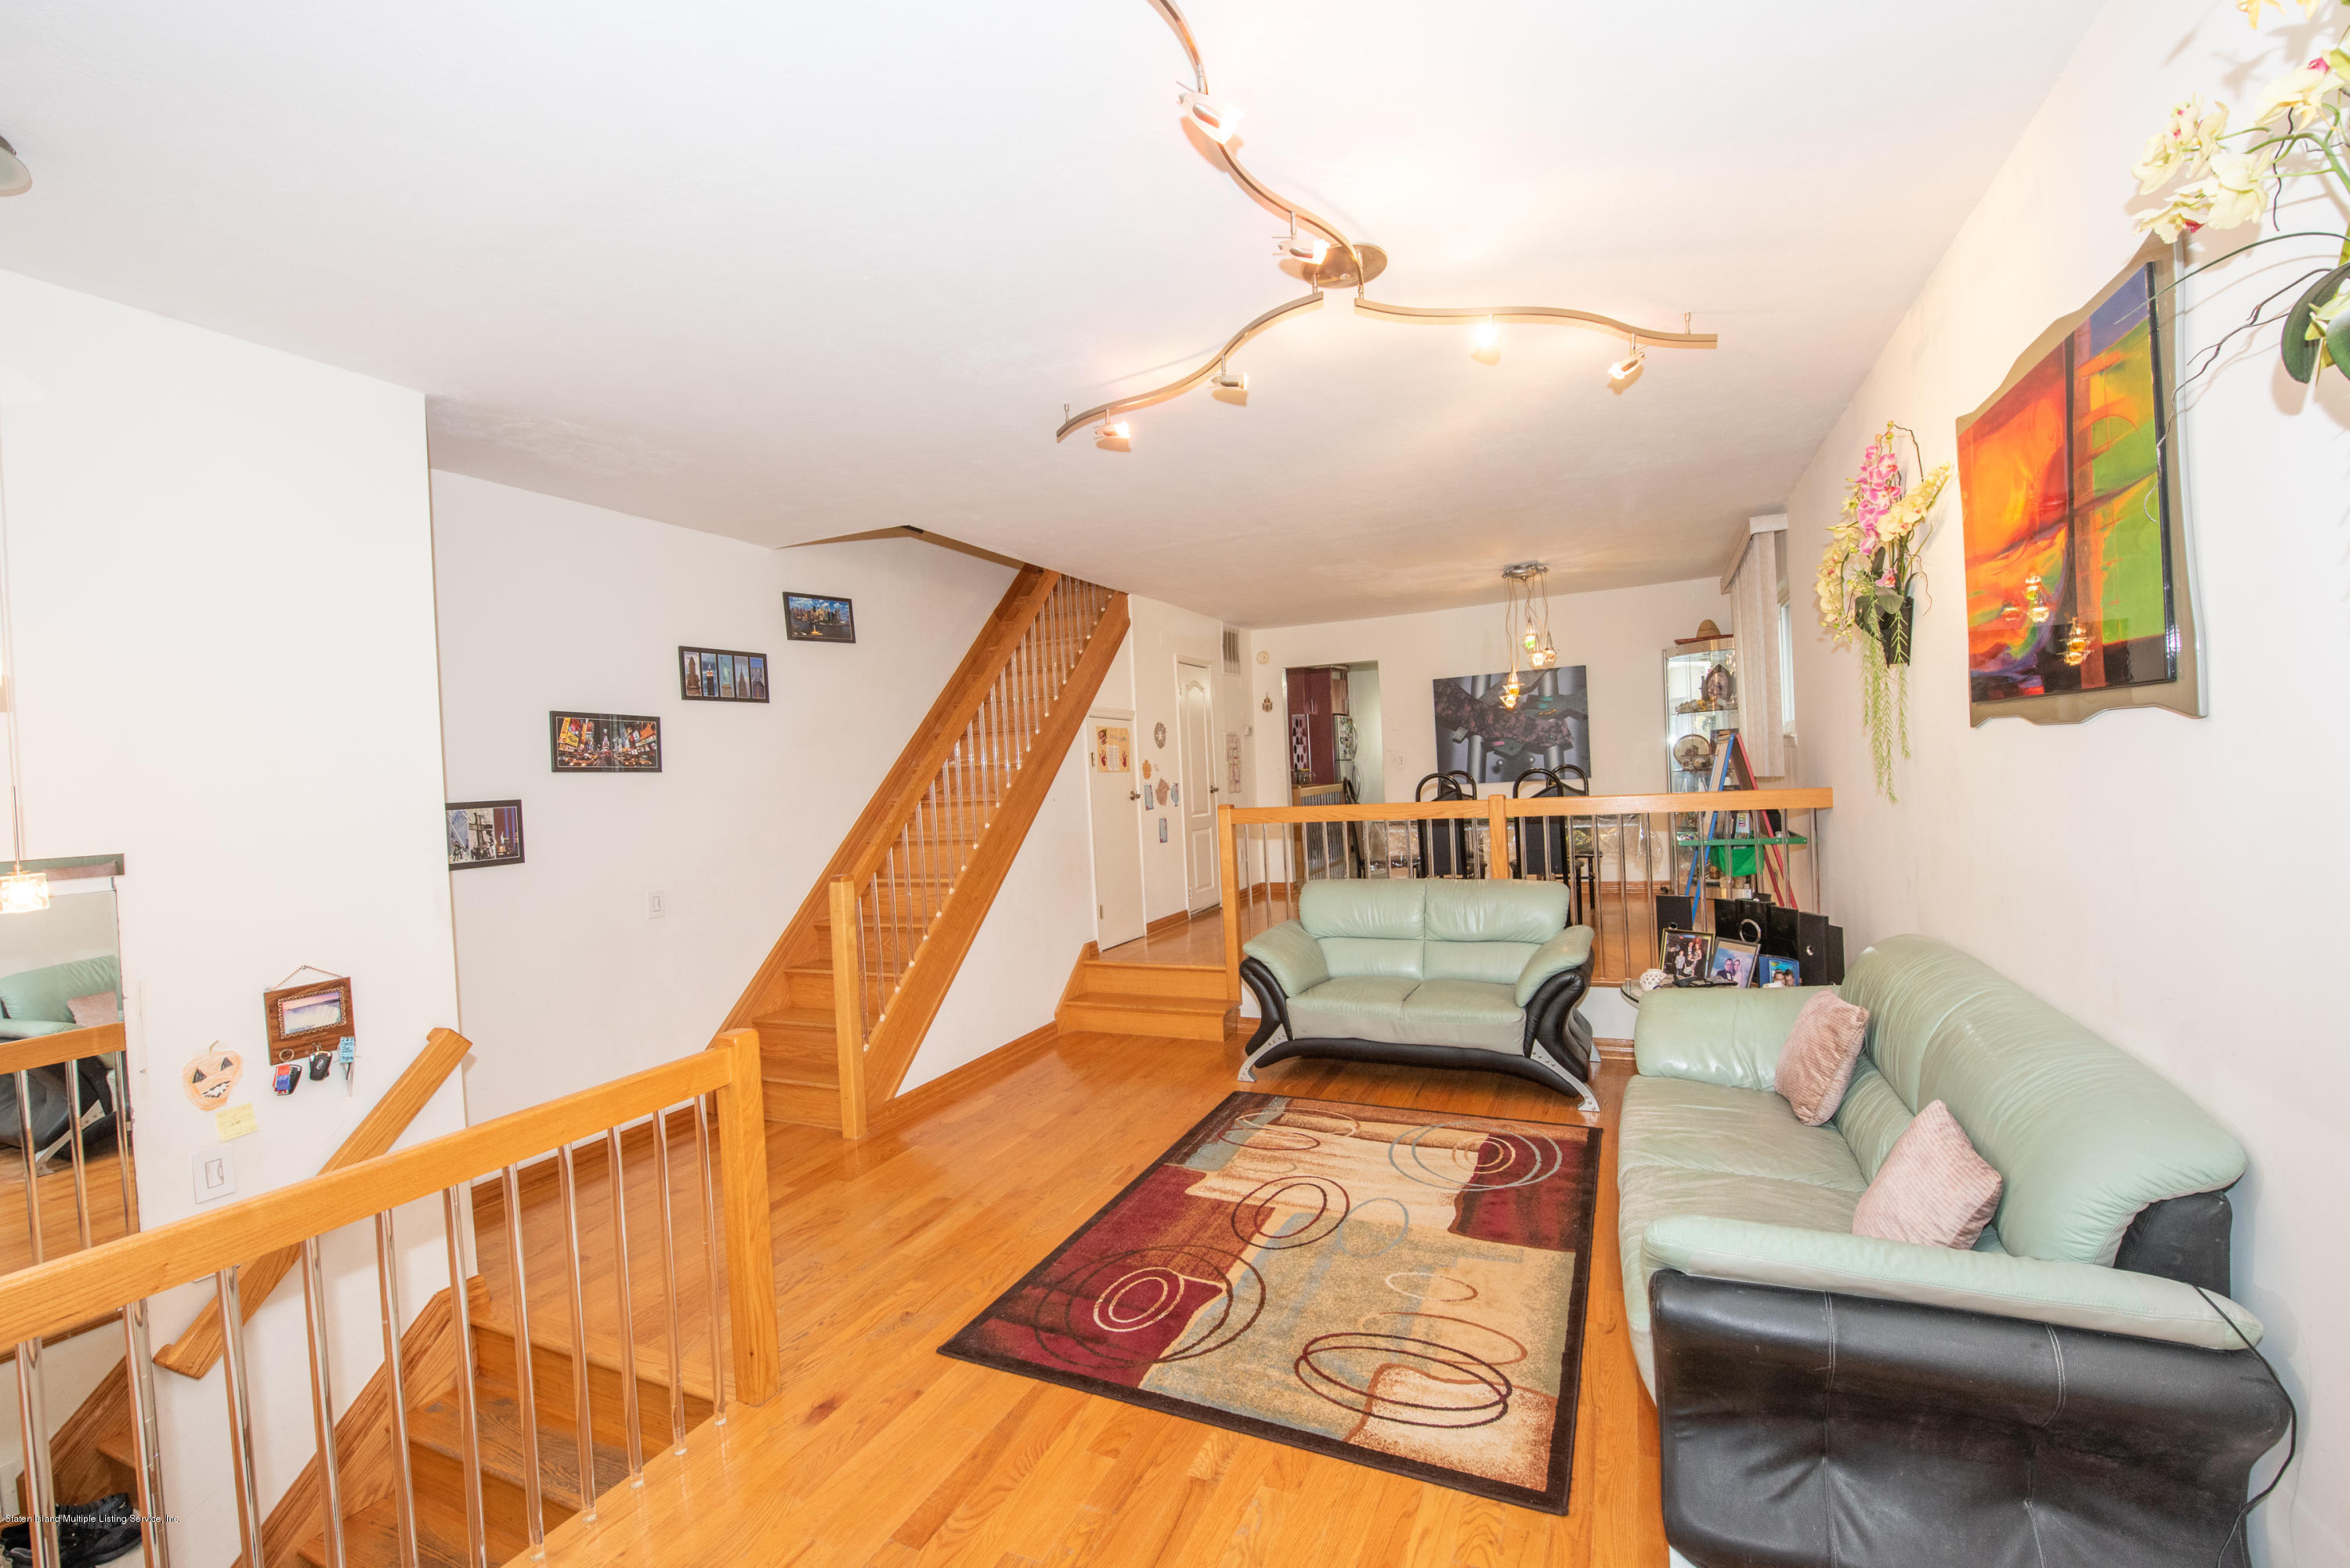 Single Family - Semi-Attached 76 Mcveigh Avenue  Staten Island, NY 10314, MLS-1133370-5